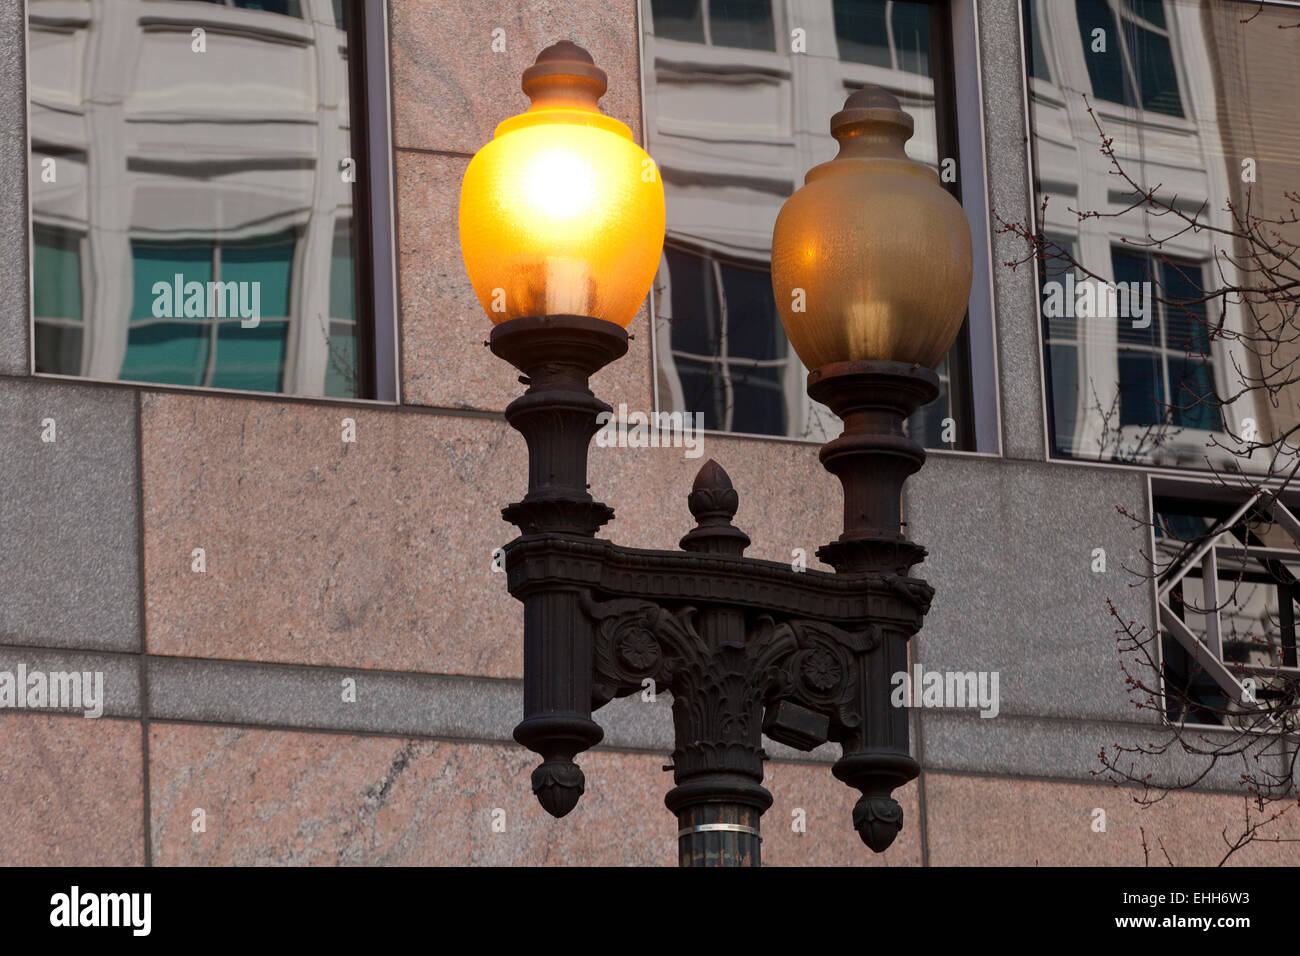 Old street lamp - USA - Stock Image